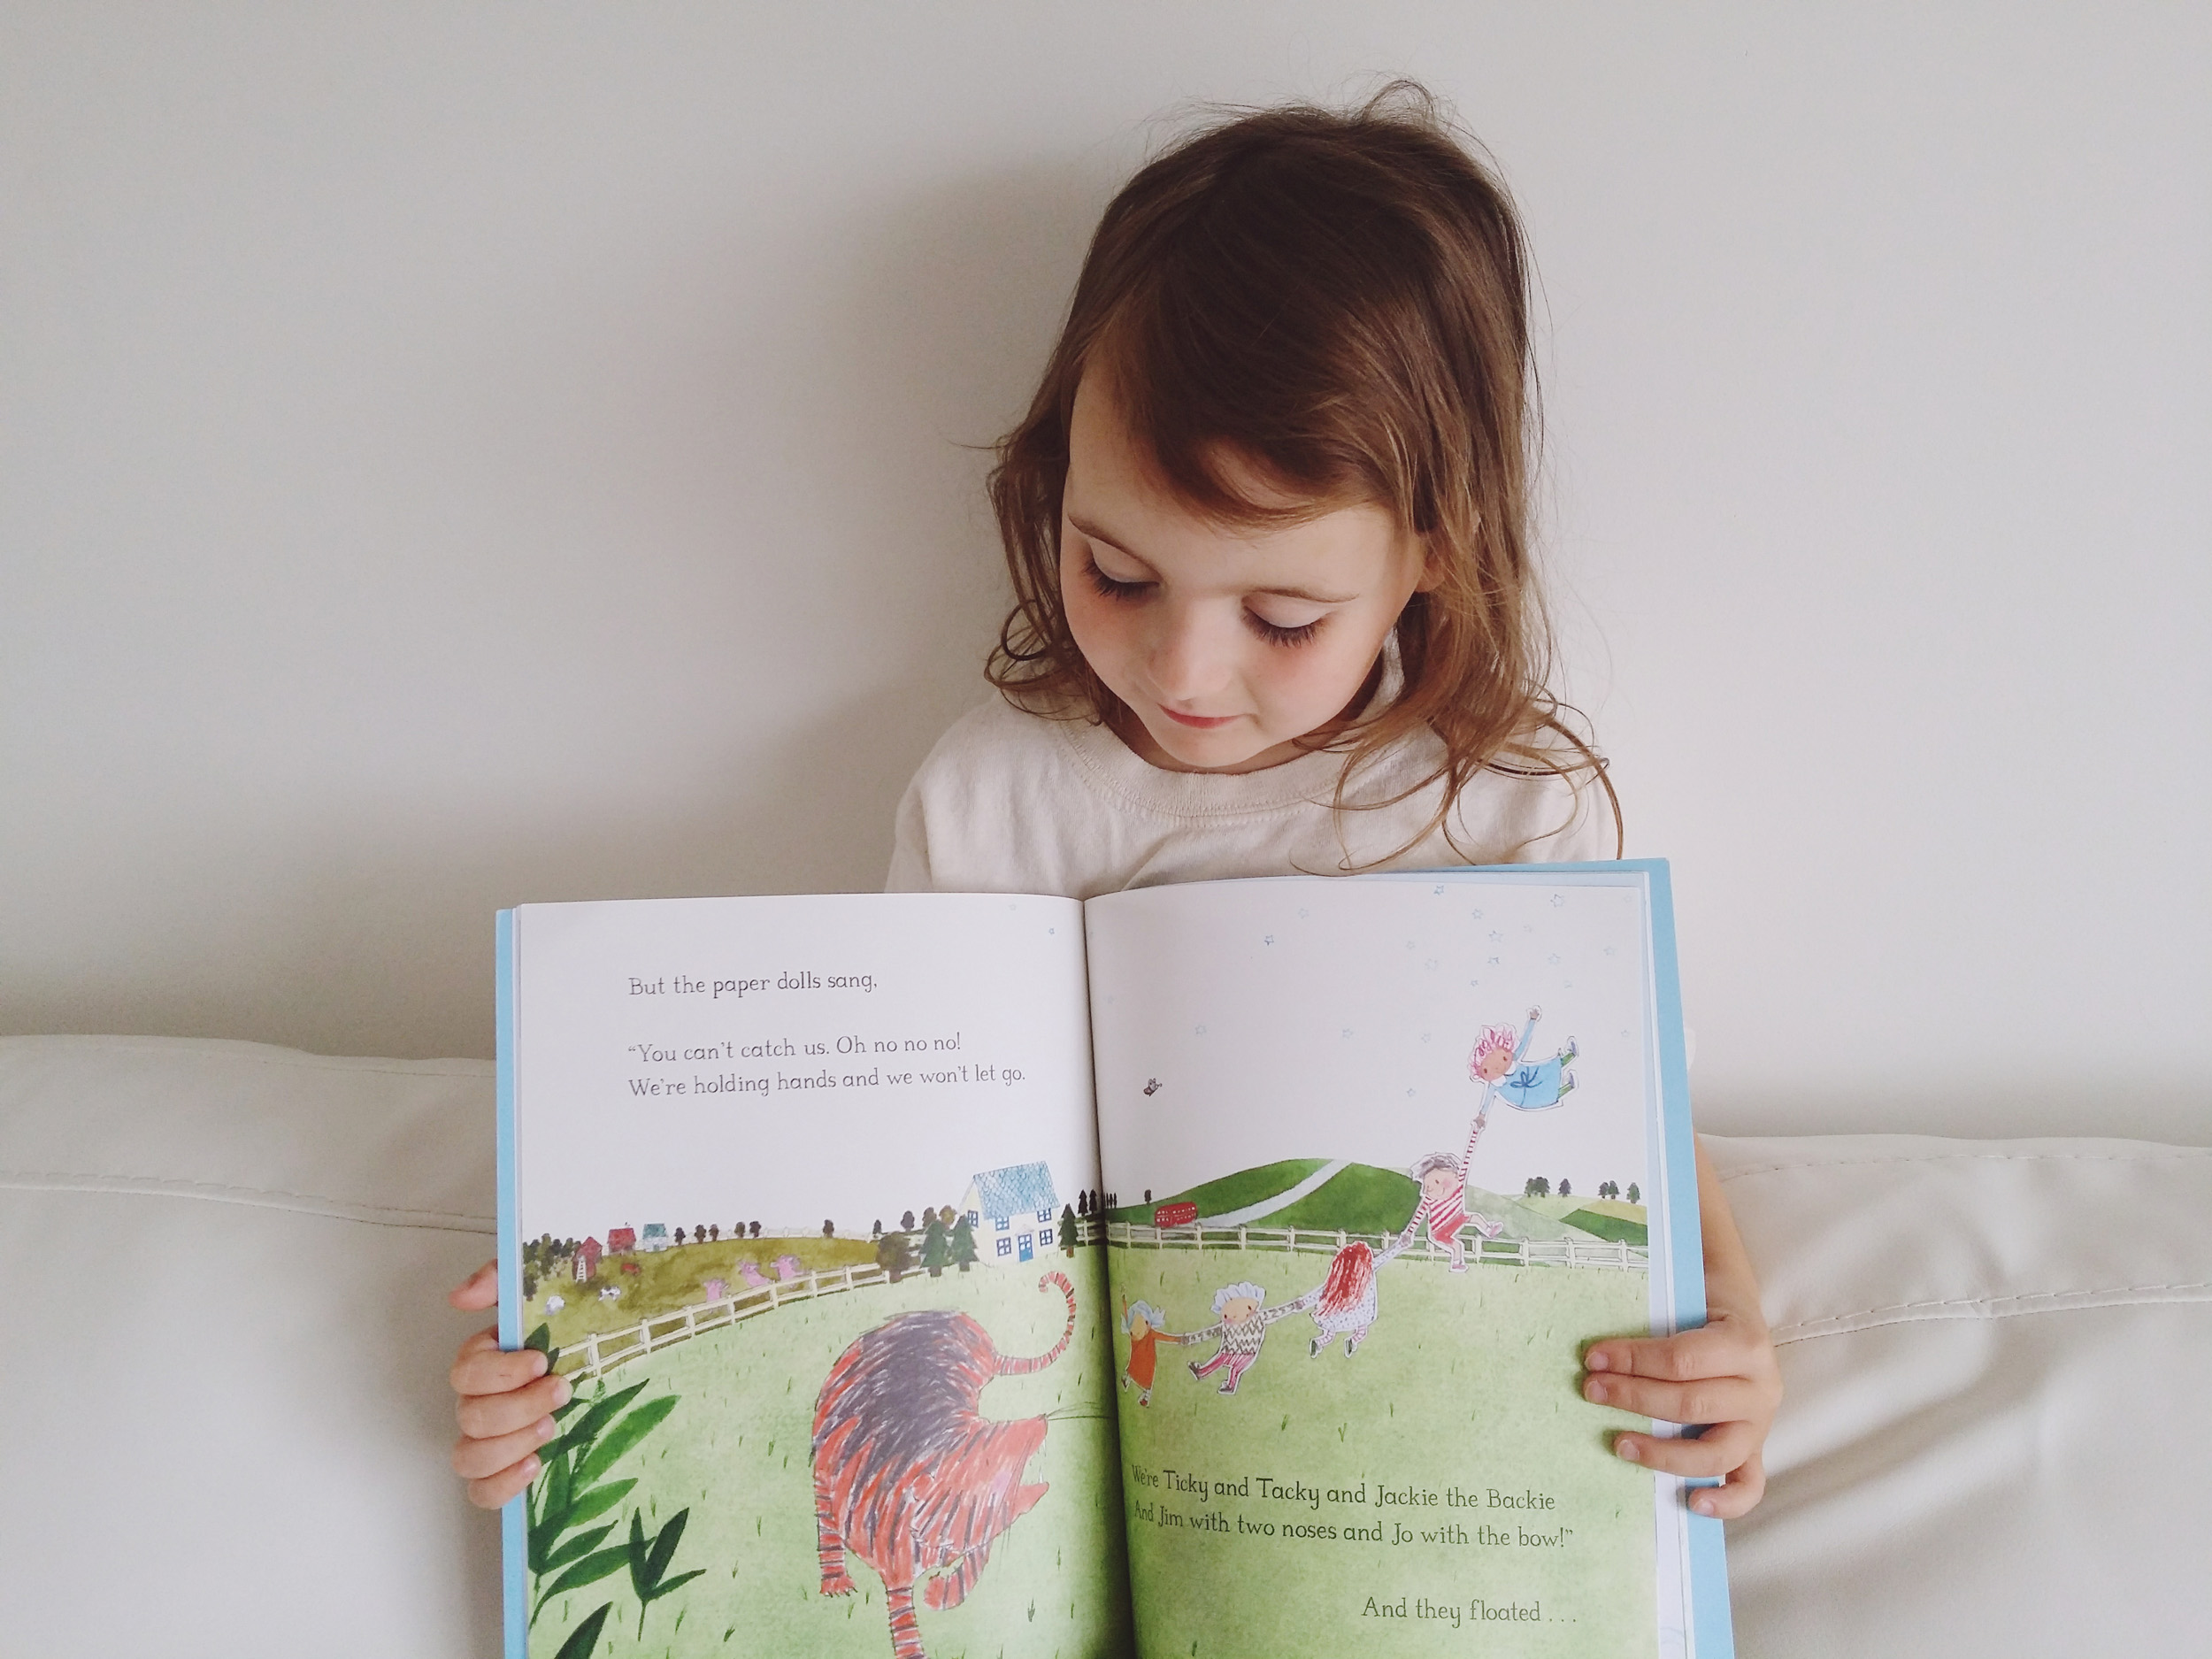 9 books with characters with great imagination that will help spark imagination in your children.